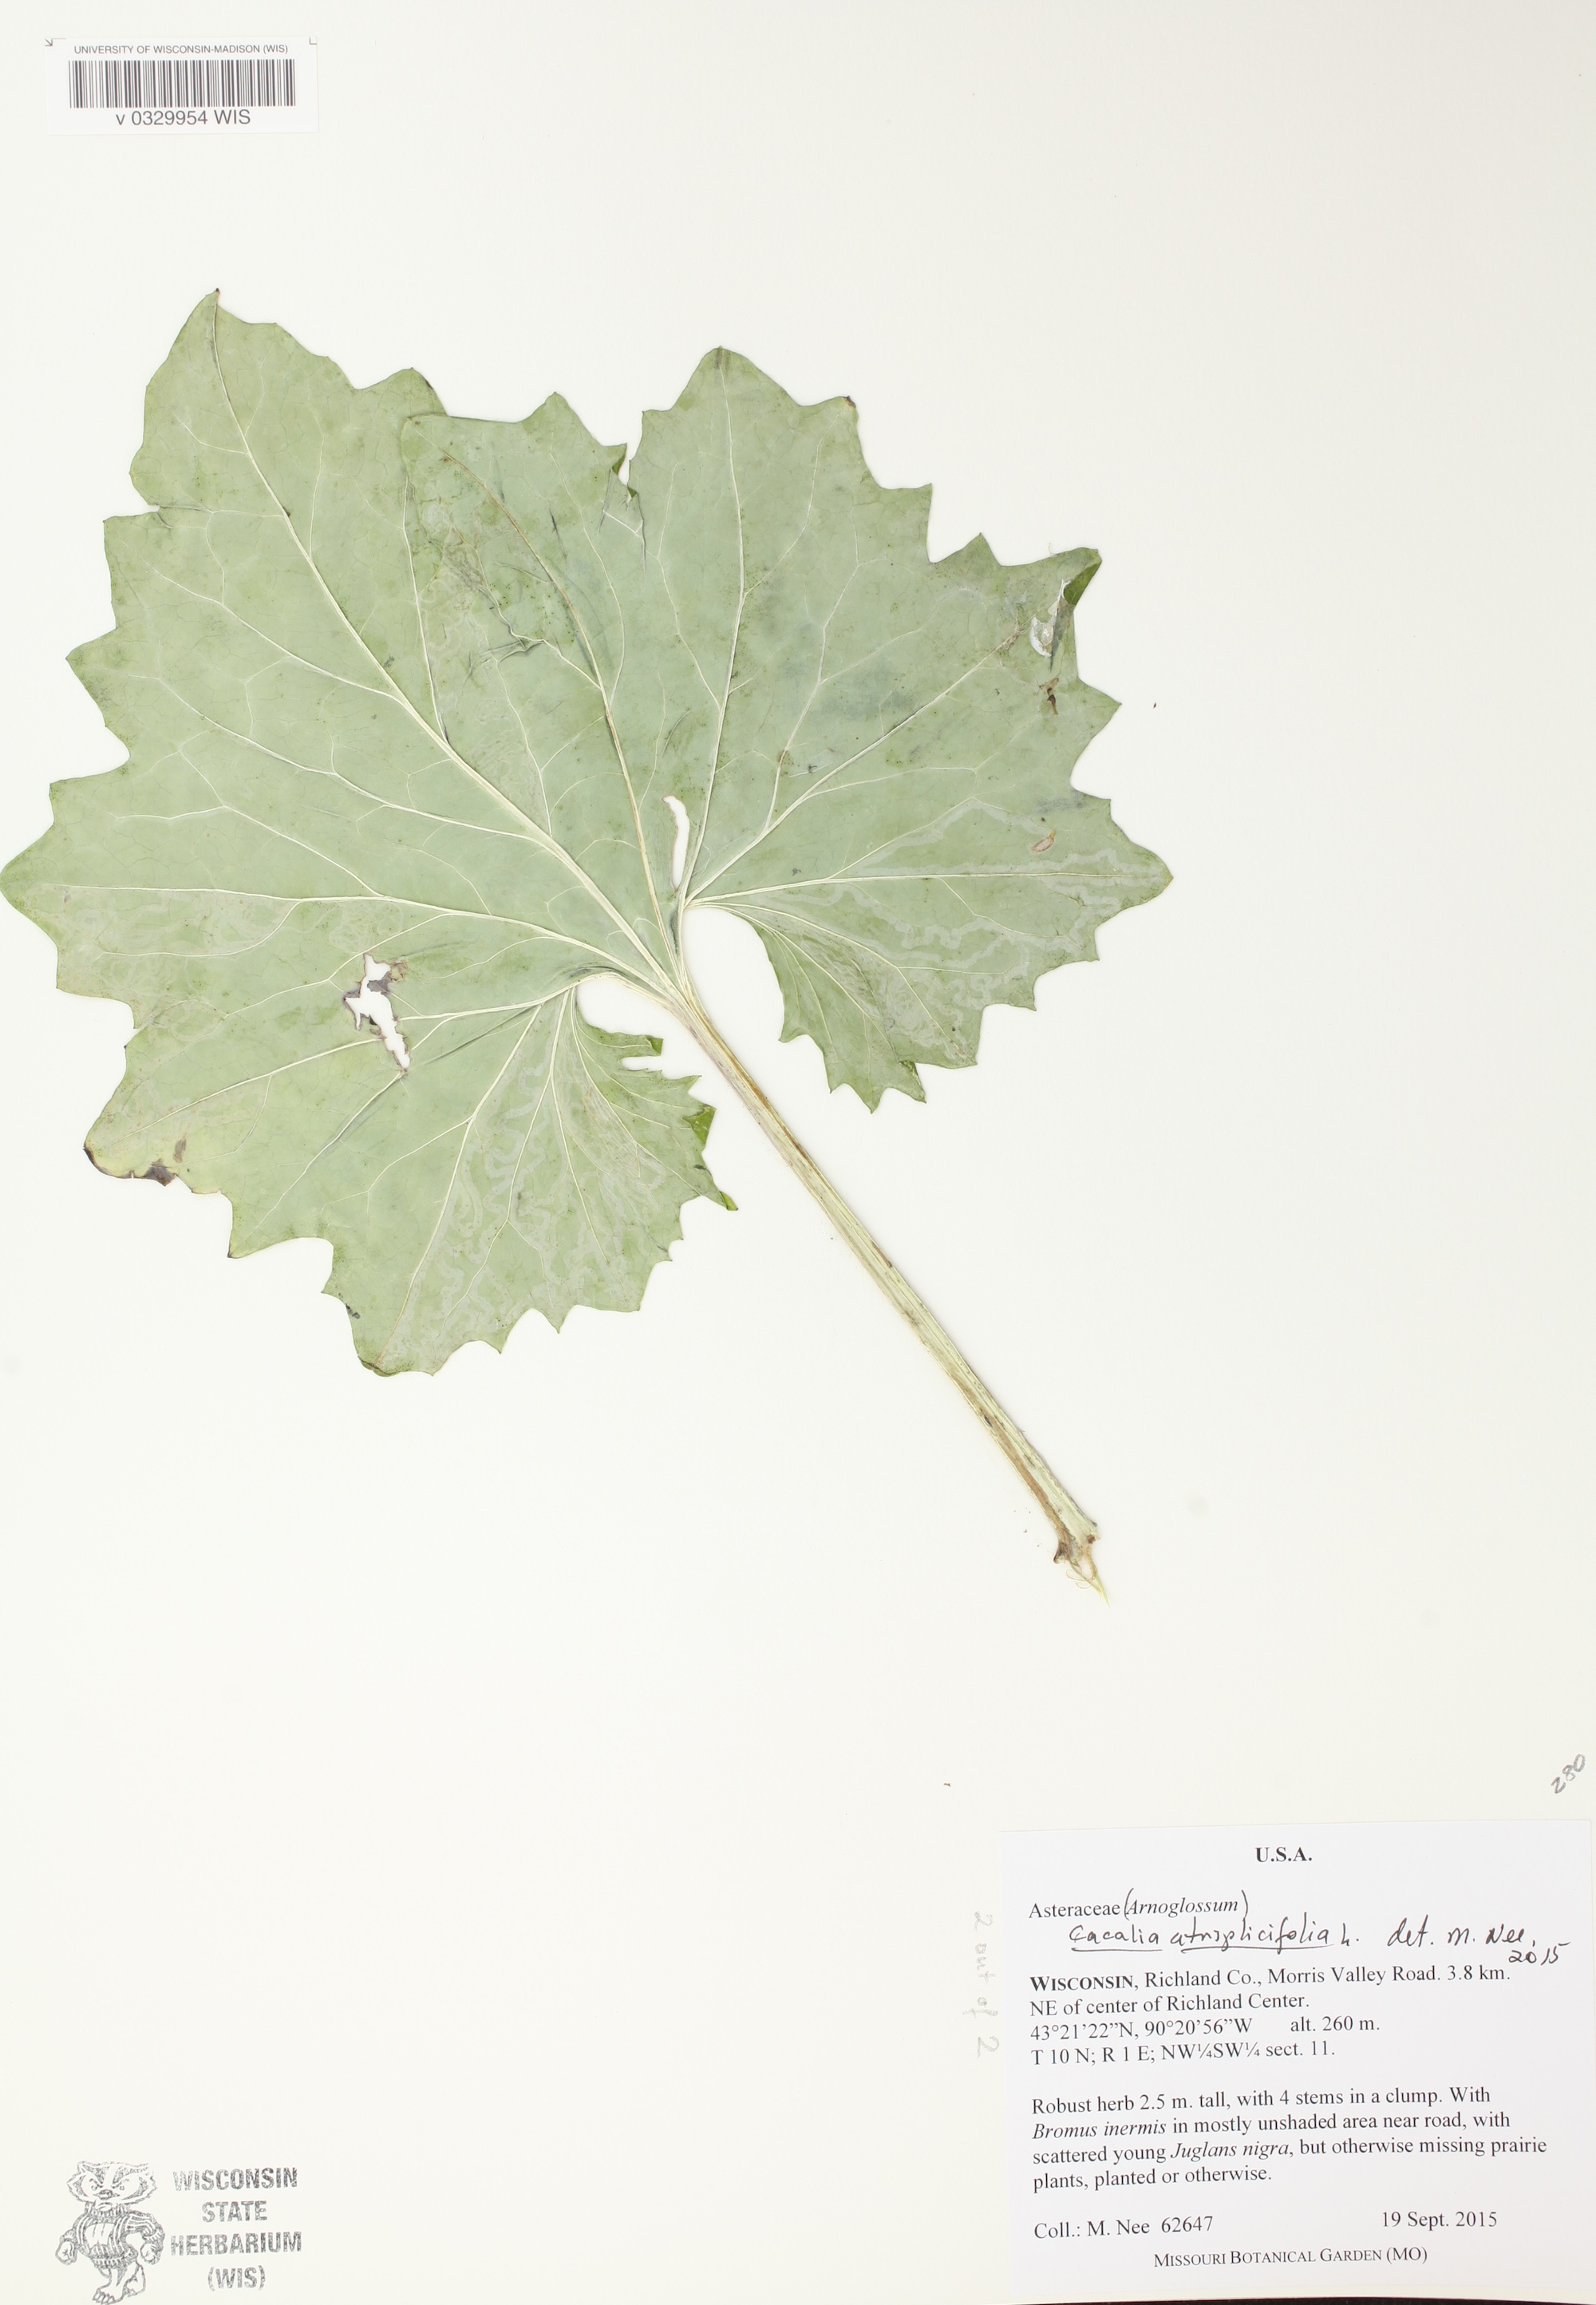 Pale Indian Plantain leaf specimen collected in Richland County on September 19, 2015.